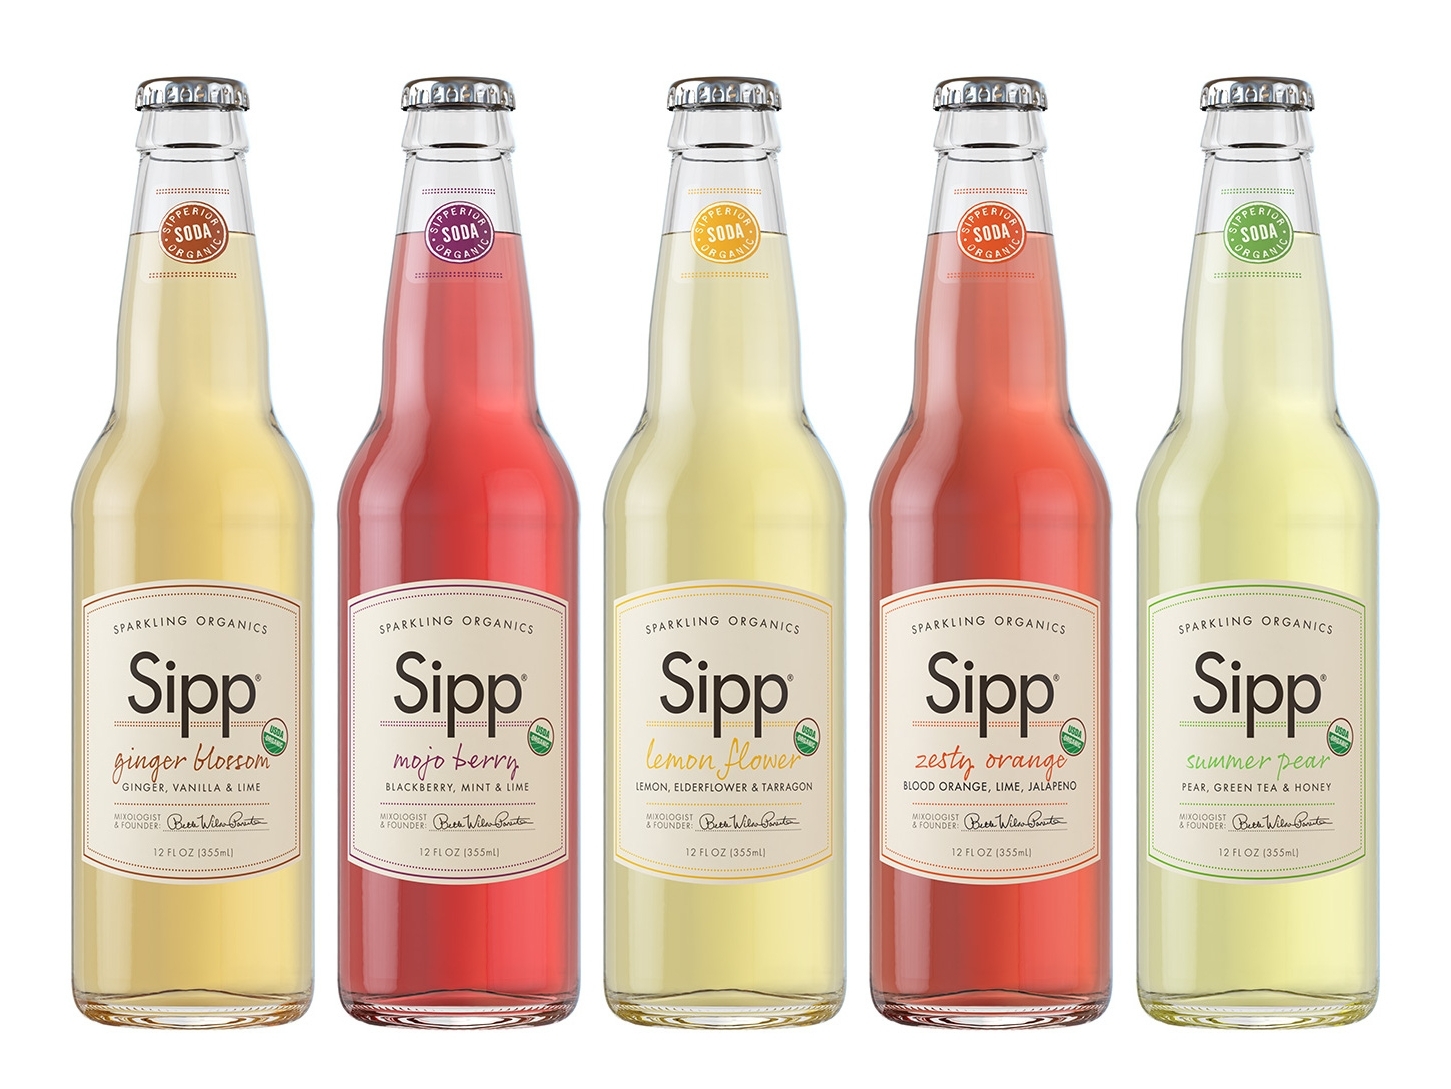 sipp bottle lineup 003.jpg